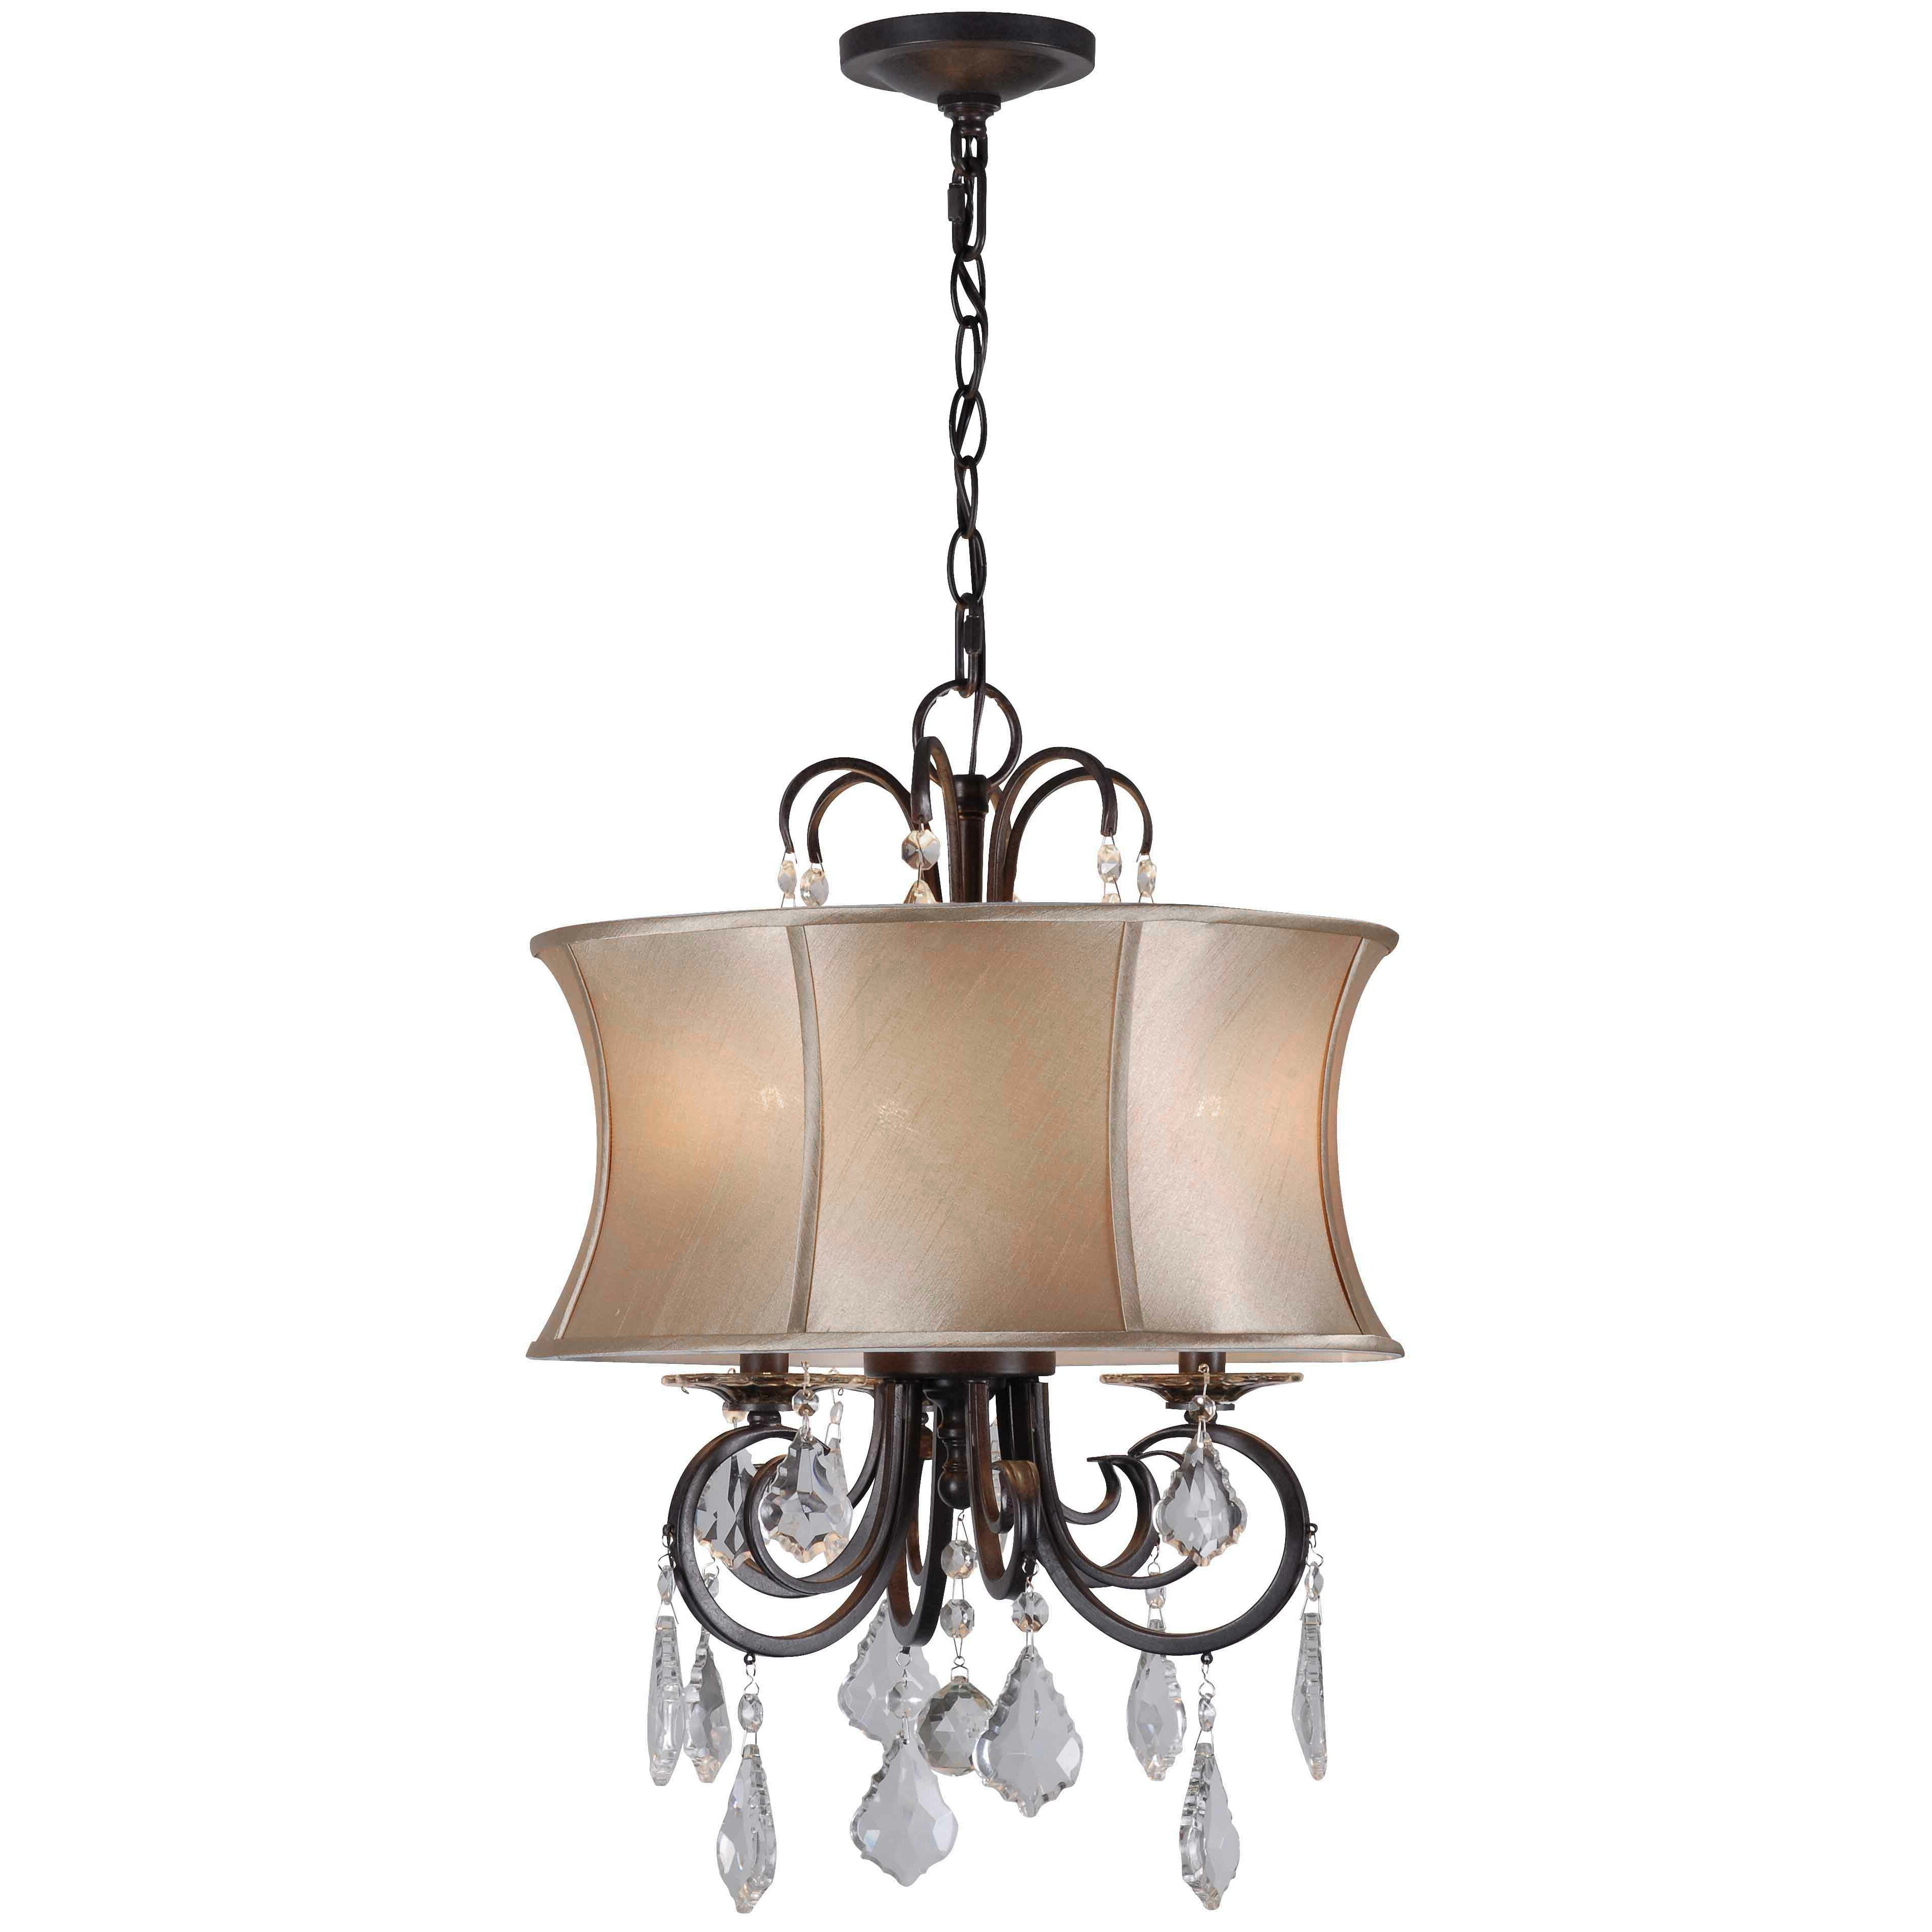 world imports annelise 3 light drum chandelier chandeliers pendants wayfair drum lighting